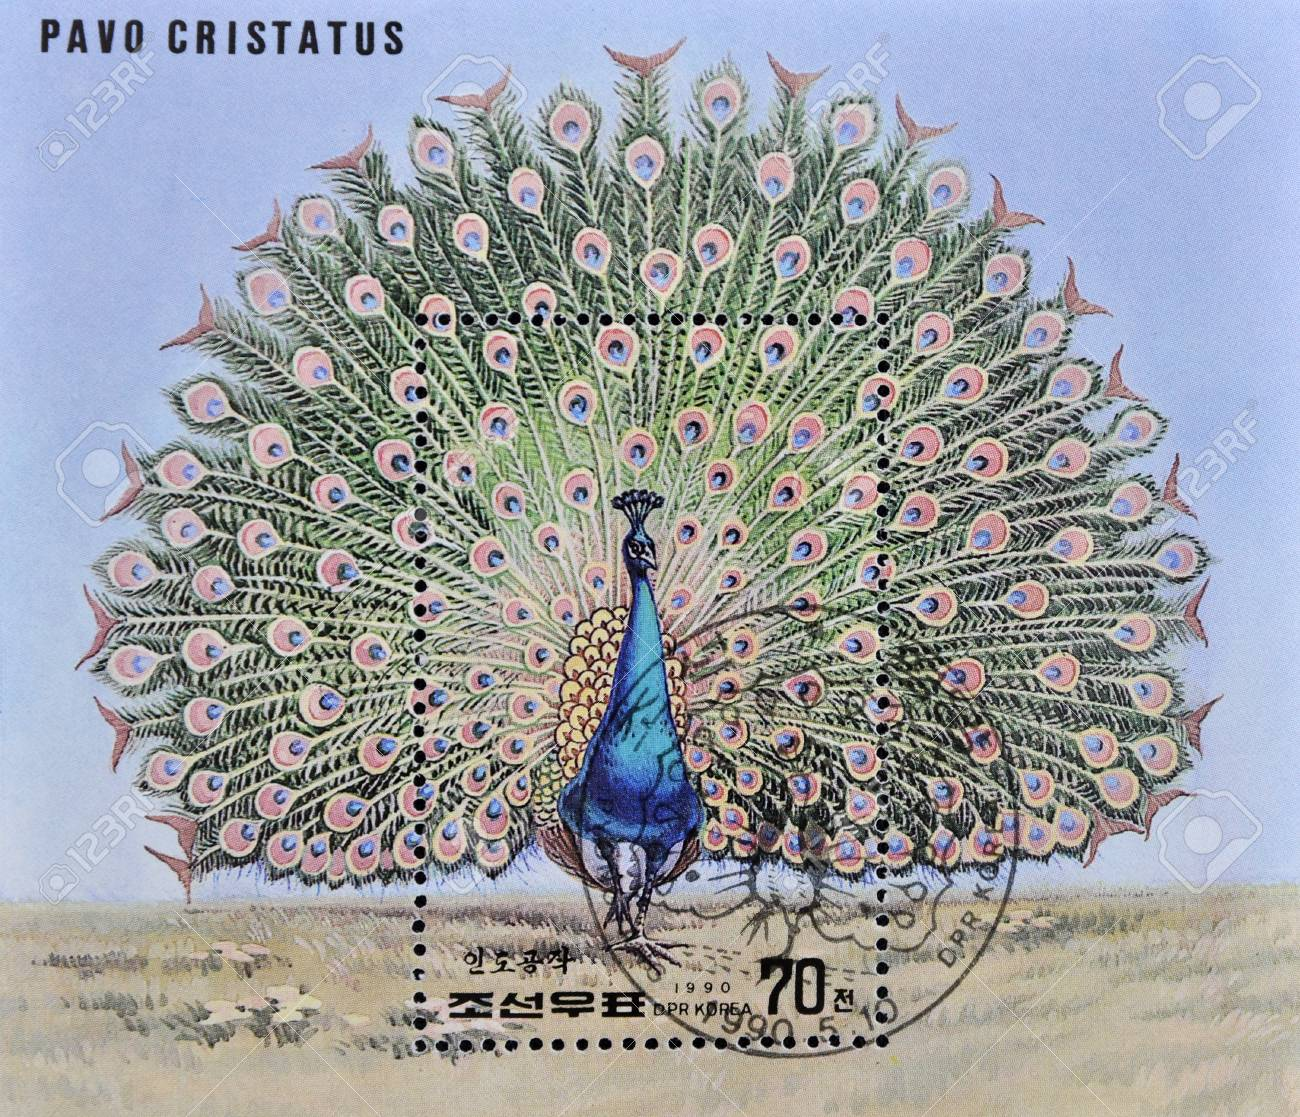 NORTH KOREA - CIRCA 1990: A stamp printed in DPR Korea shows a pavo cristatus, circa 1990 Stock Photo - 10741430